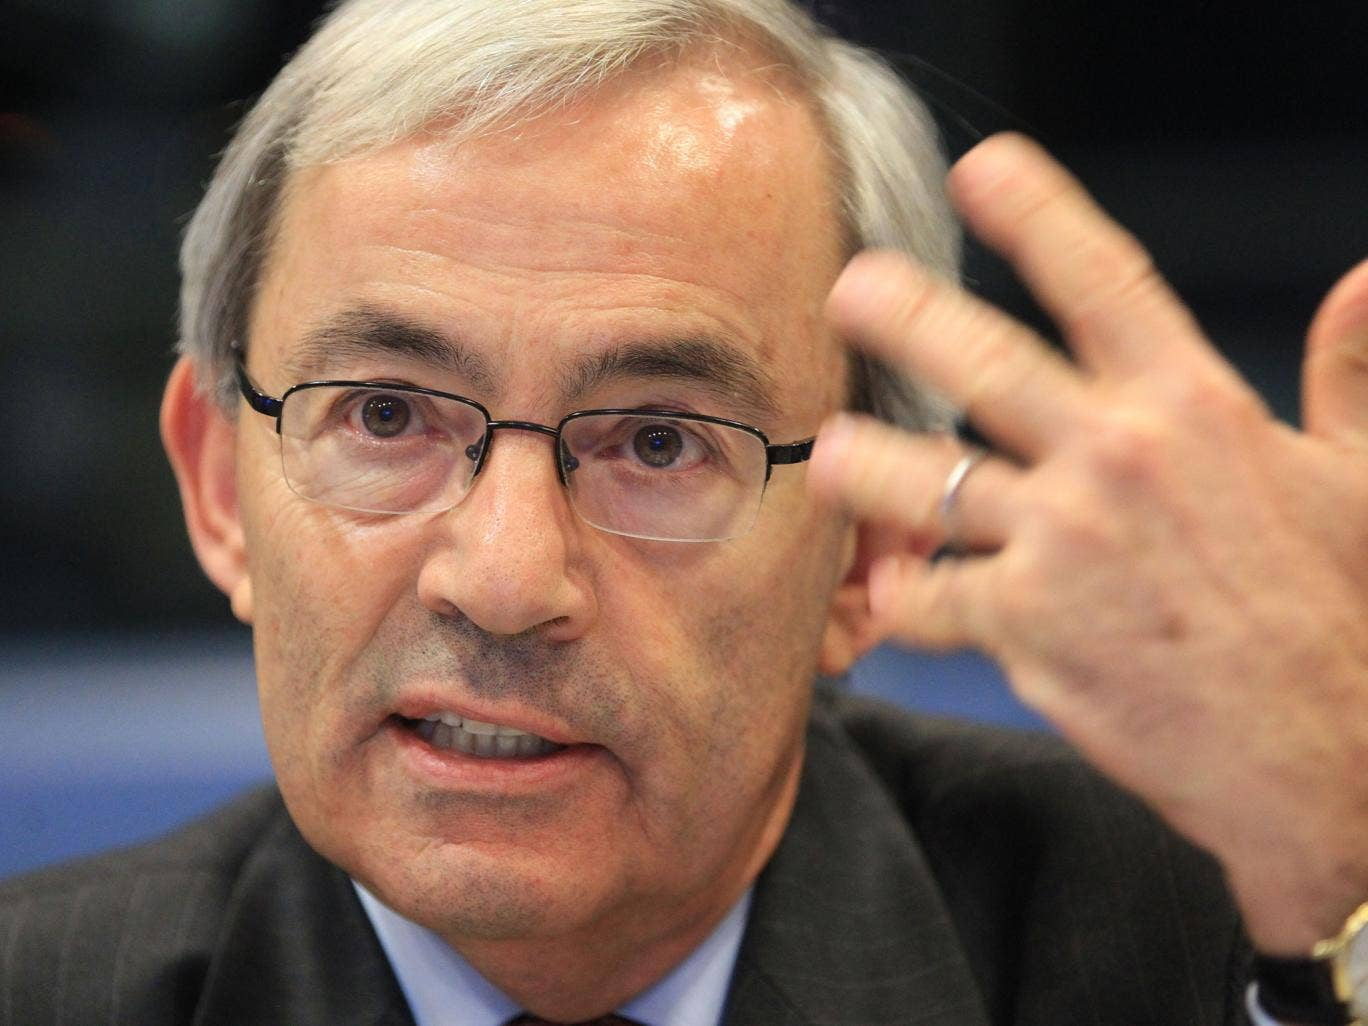 Sir Christopher Pissarides wants to see output levels increase before interest rates are put up